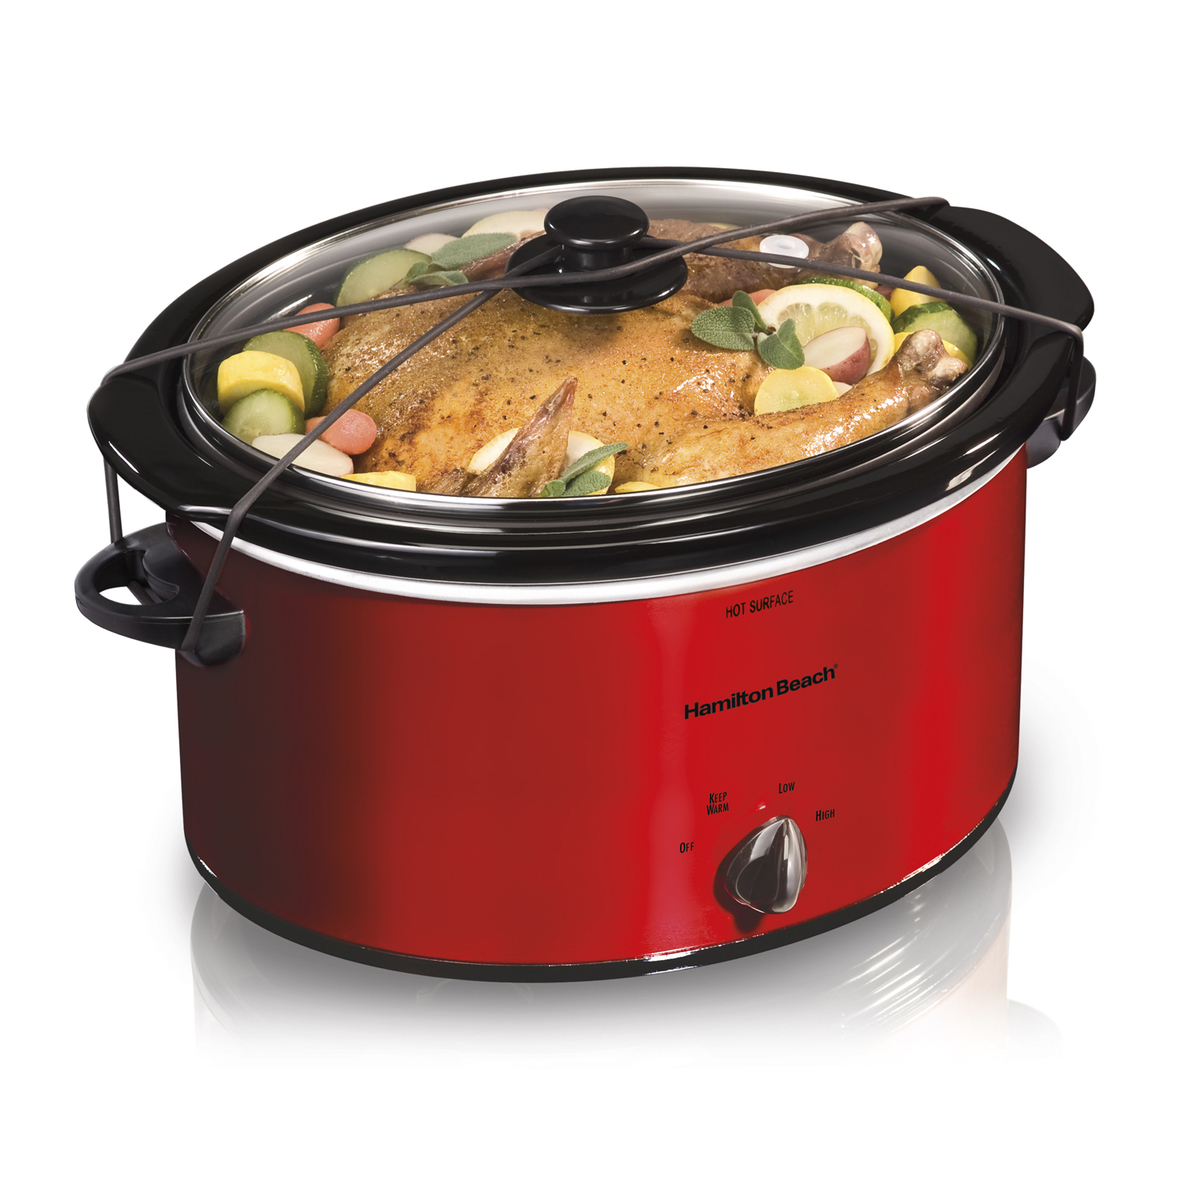 5 Quart Portable Slow Cooker (33155)